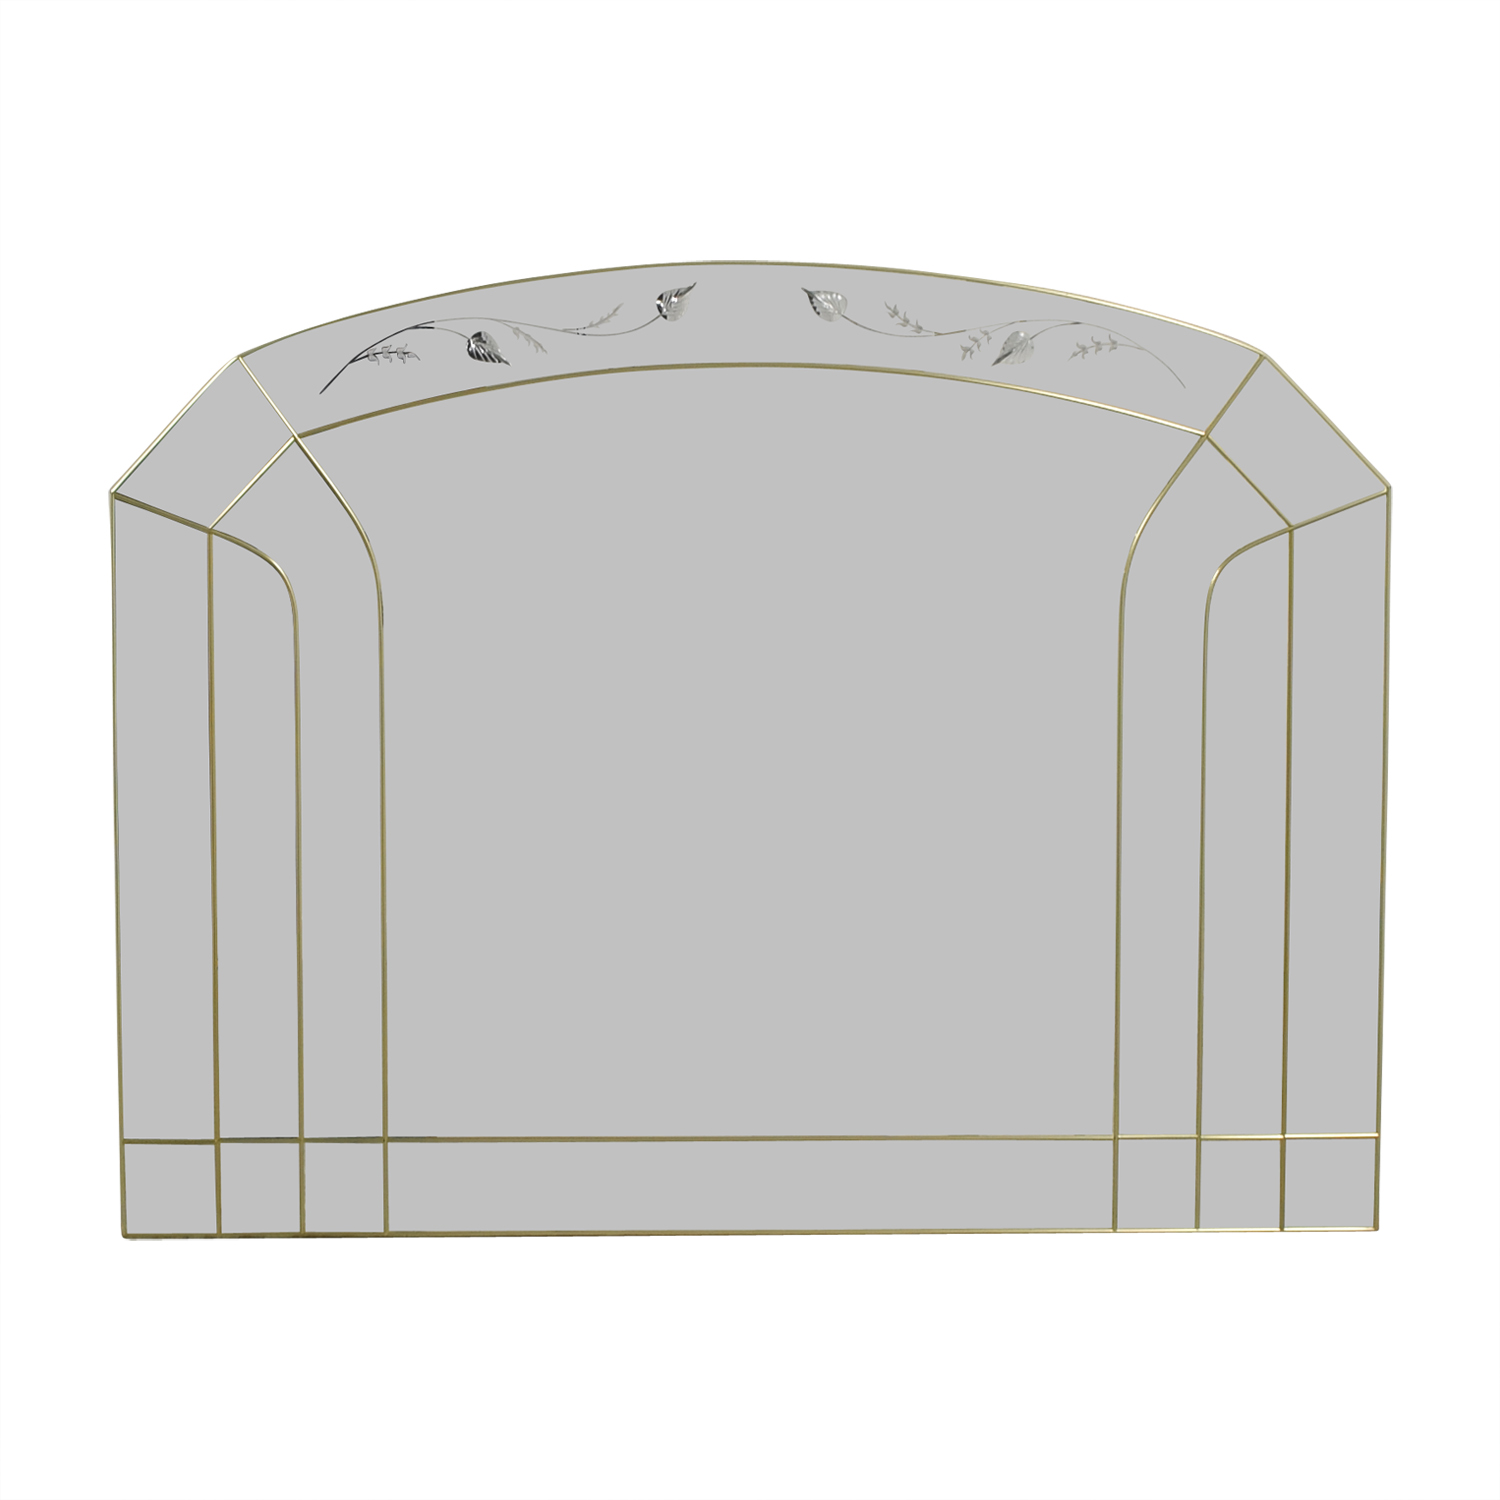 Curvo Camere Curvo Camere Etched Mirror coupon